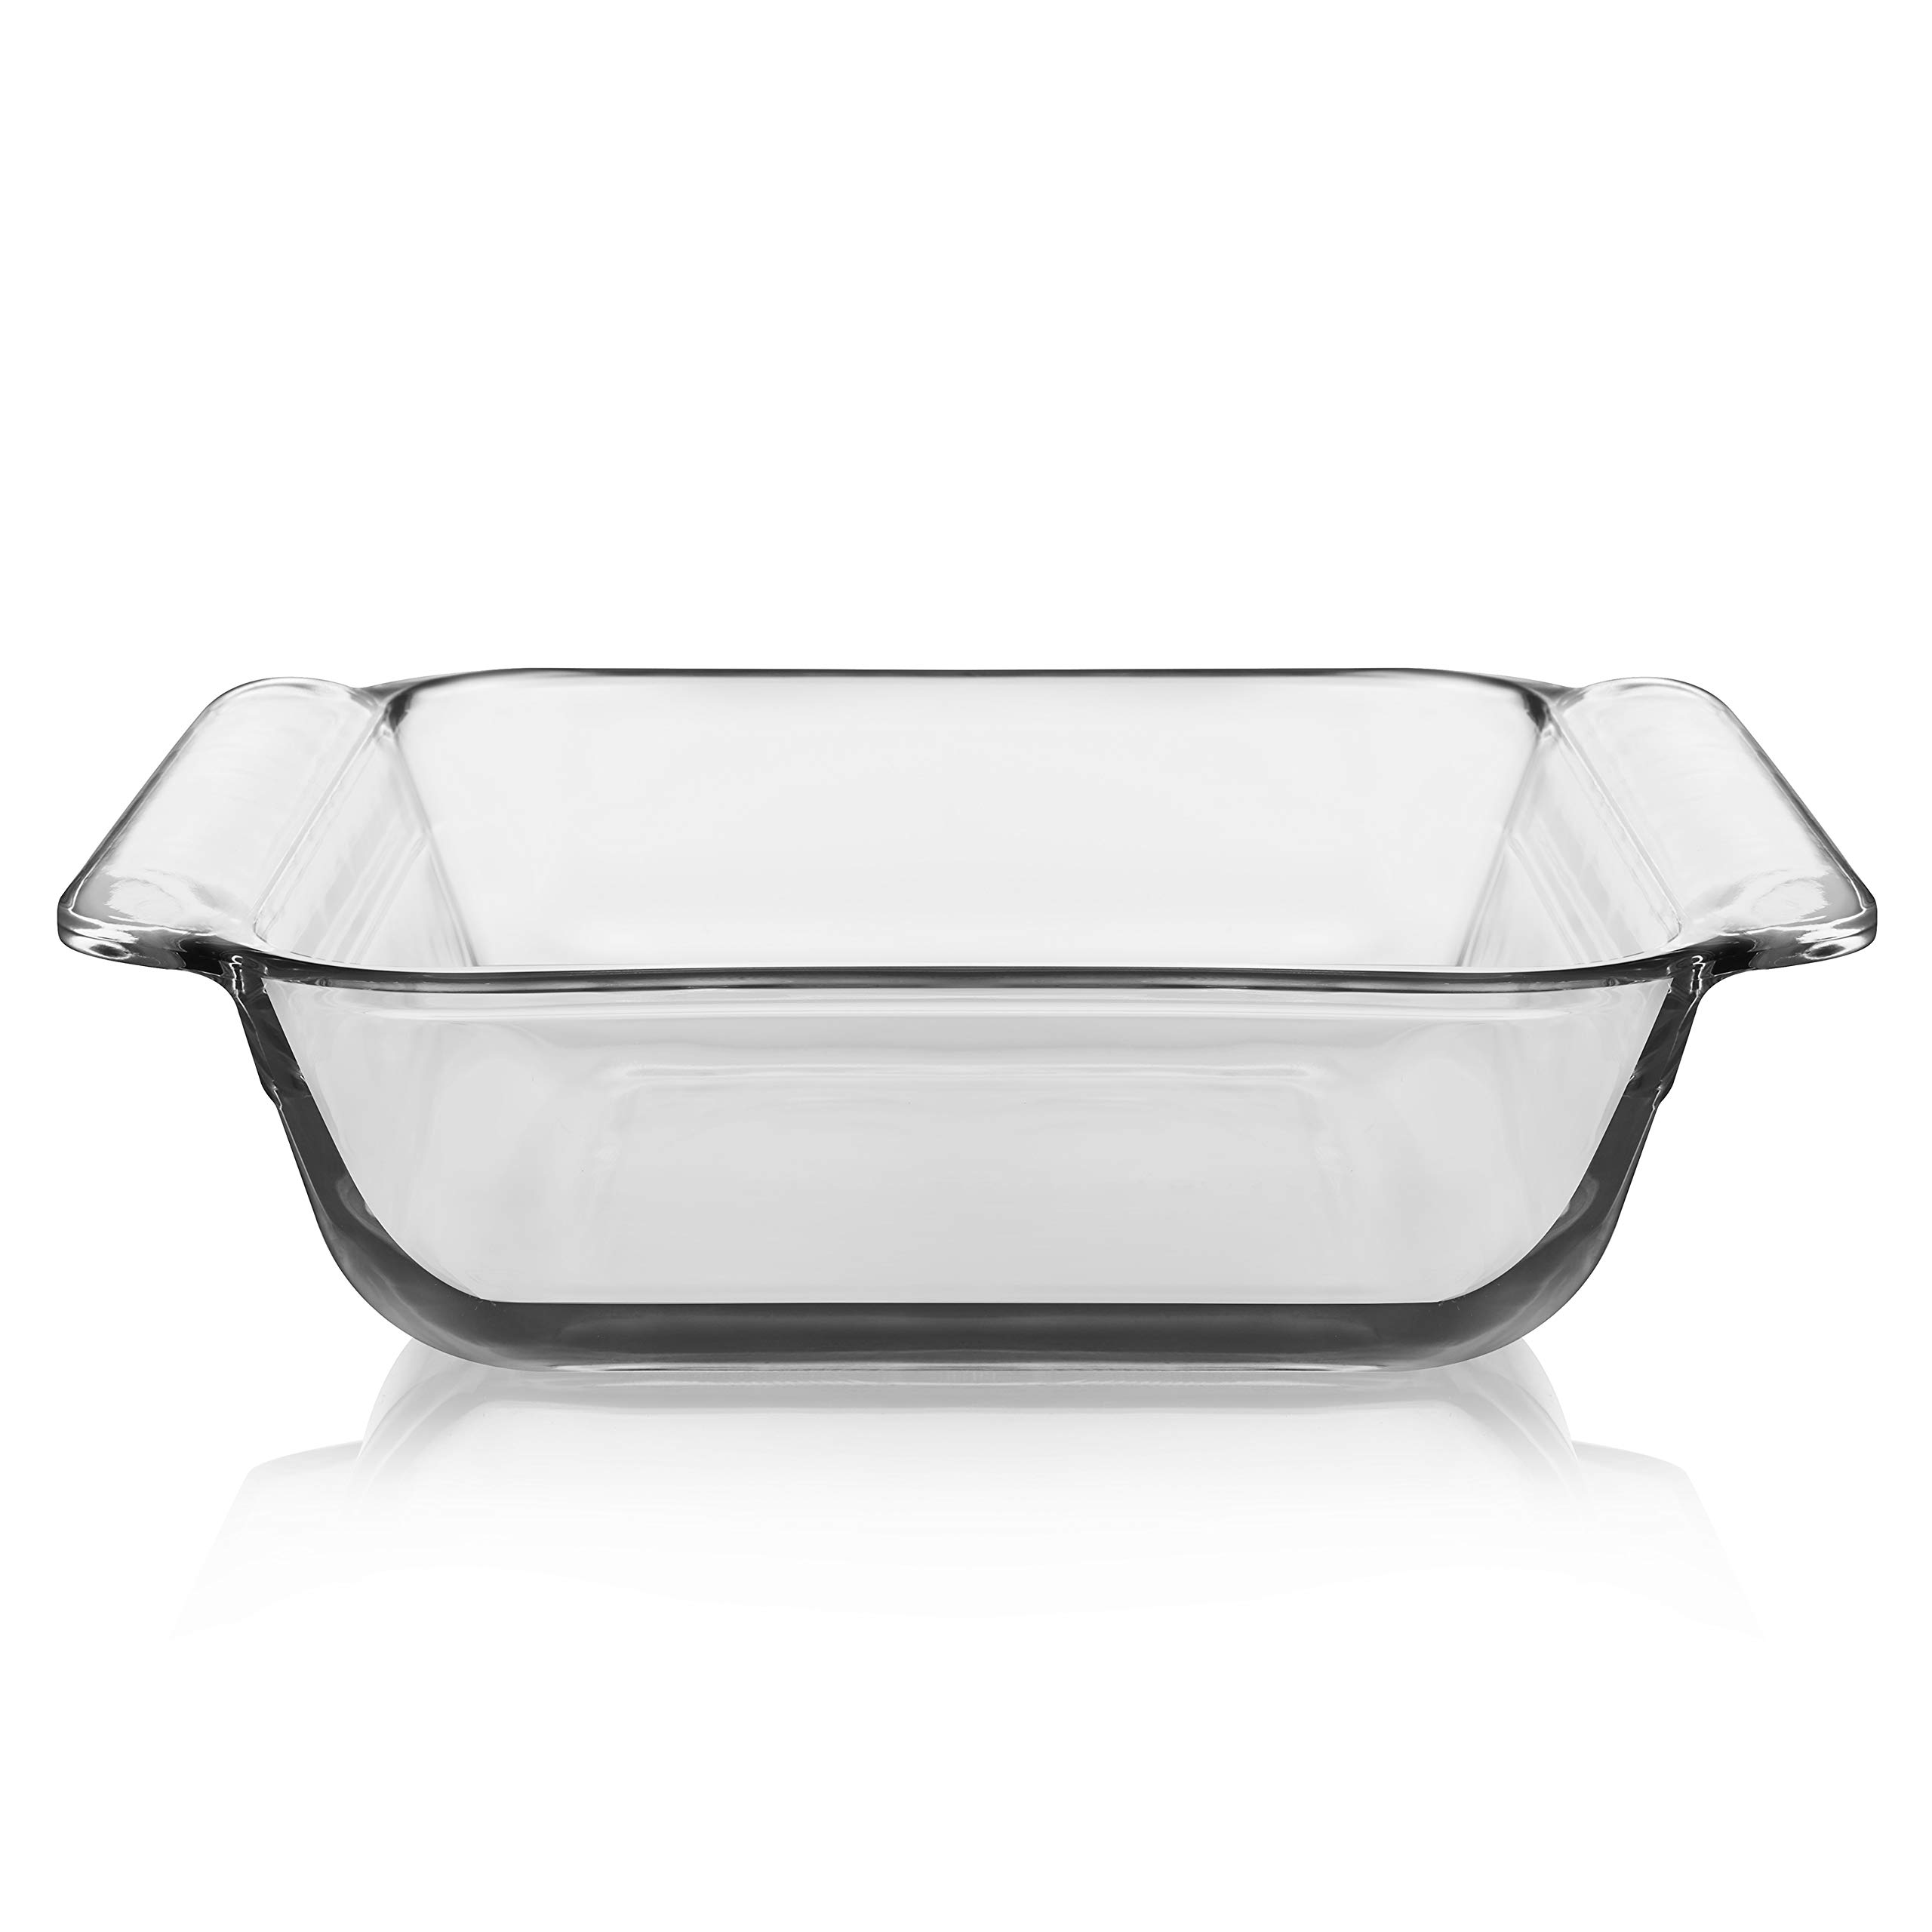 Libbey Baker's Premium 6-Piece Glass Casserole Baking Dish Set with 2 Covers by Libbey (Image #3)